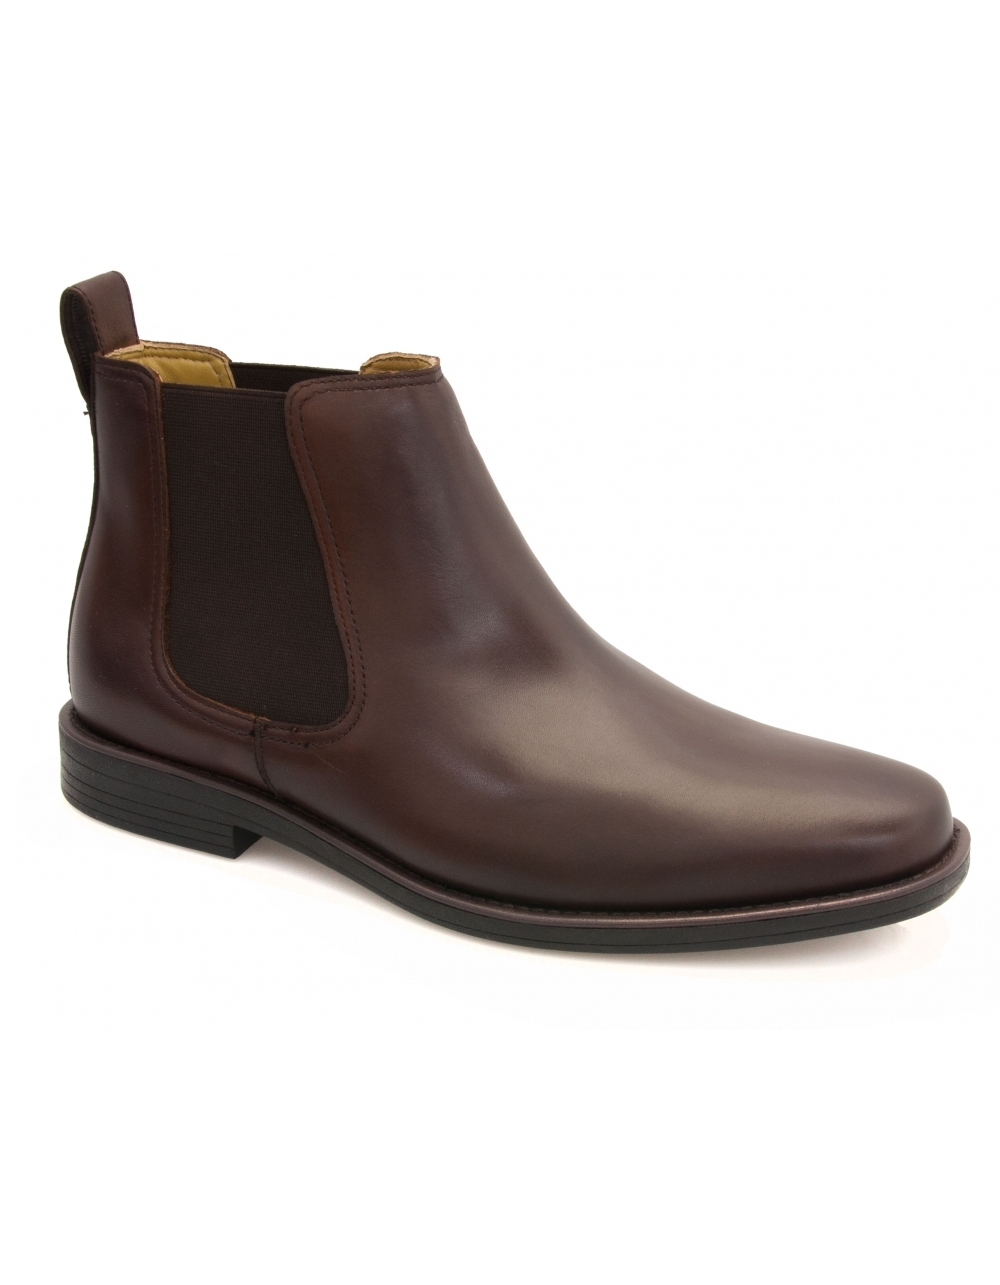 steptronic brown leather chelsea boot shoes